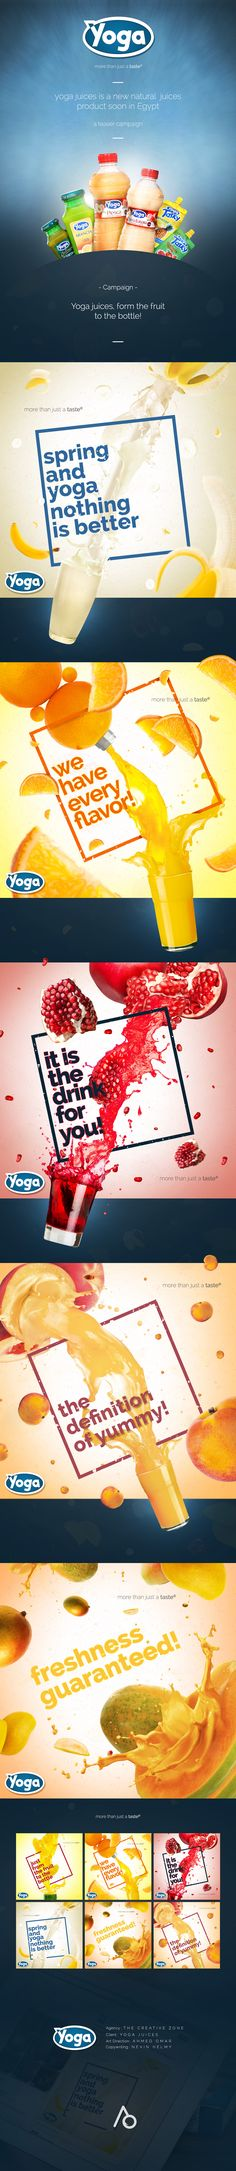 yoga juices is a new natural juices product soon in Egypt.a teaser campaign